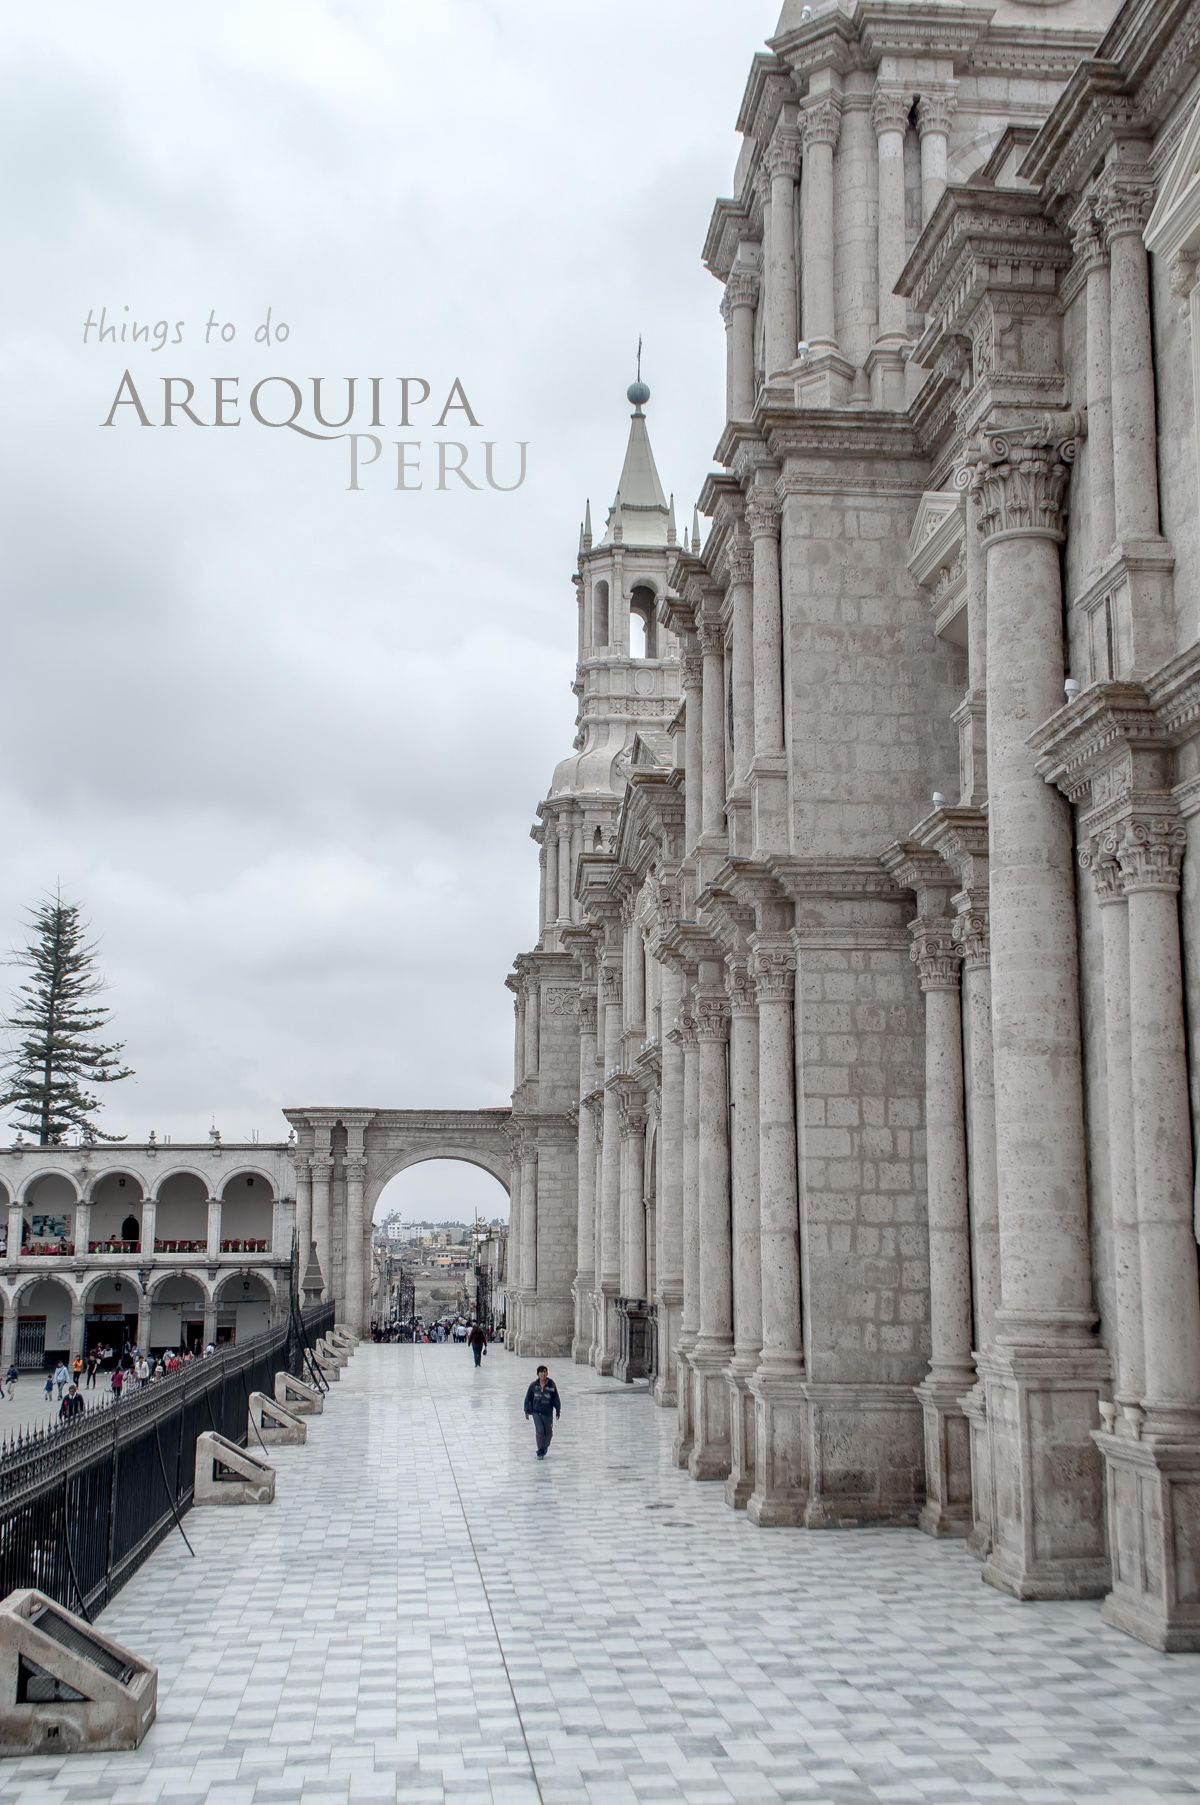 Arequipa, Peru  what to see, eat and drink in the White City is part of Arequipa Peru What To See Eat And Drink In The White City - Built in volcanic sillar stone, the White City of Arequipa has many stunning buildings  See what you can do, eat and drink in Peru's second largest city